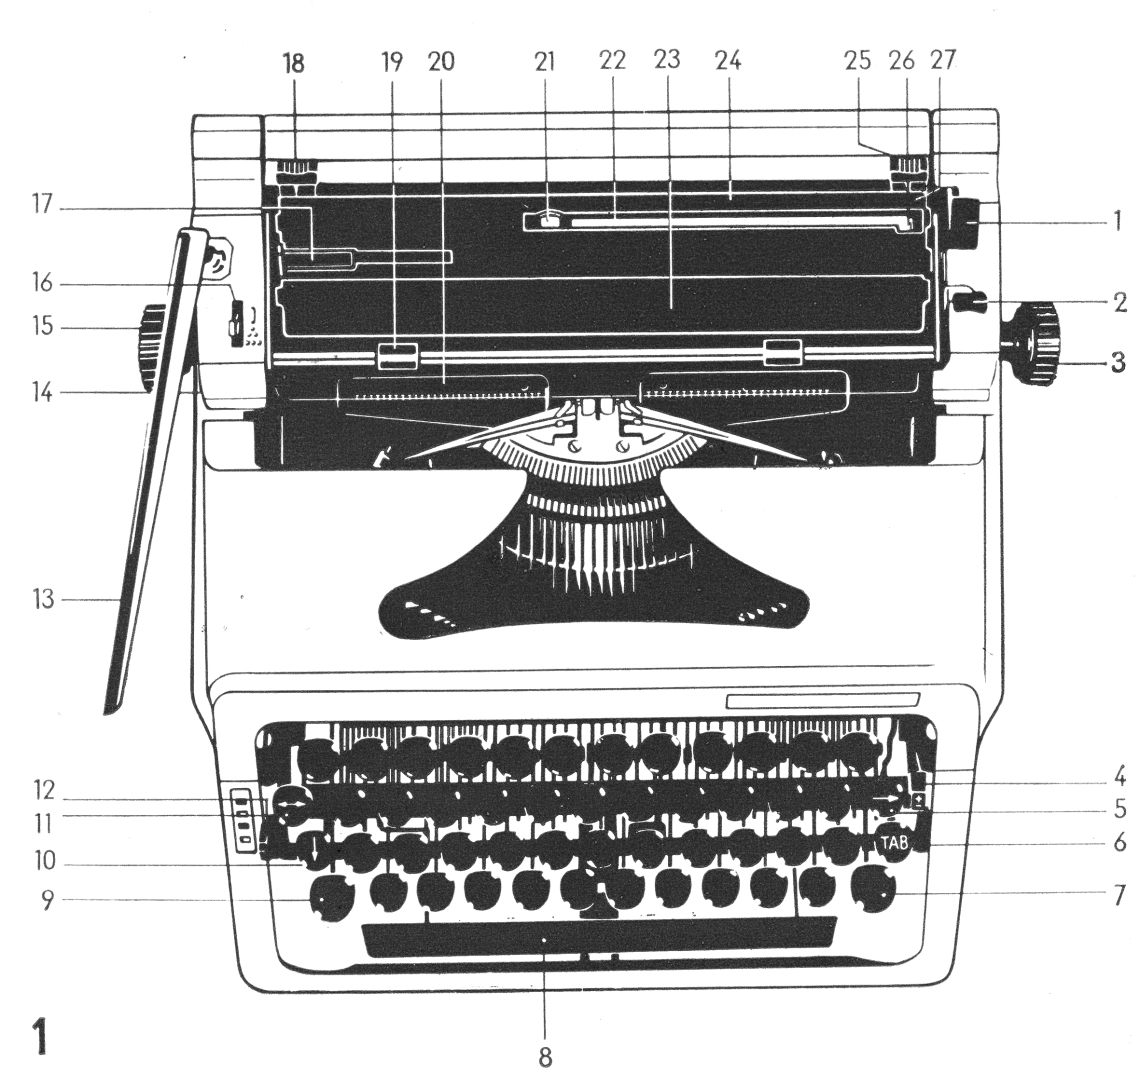 Optima Typewriter Image 02 small BW